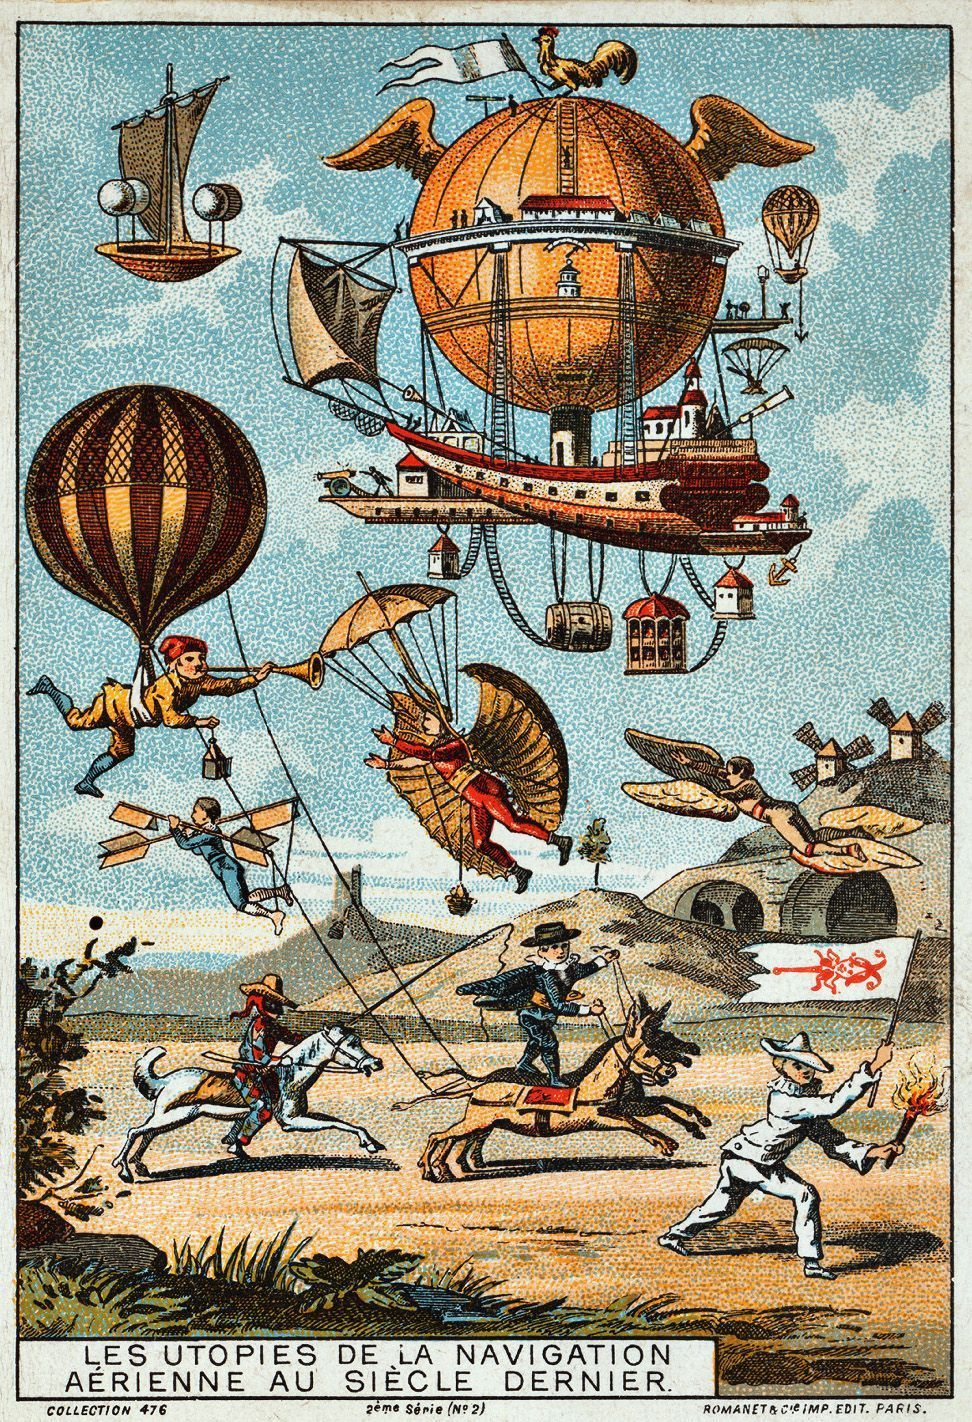 the history of the term utopia and dystopia reference to an utopian flying machines 1890 1900 chromolithograph trading card